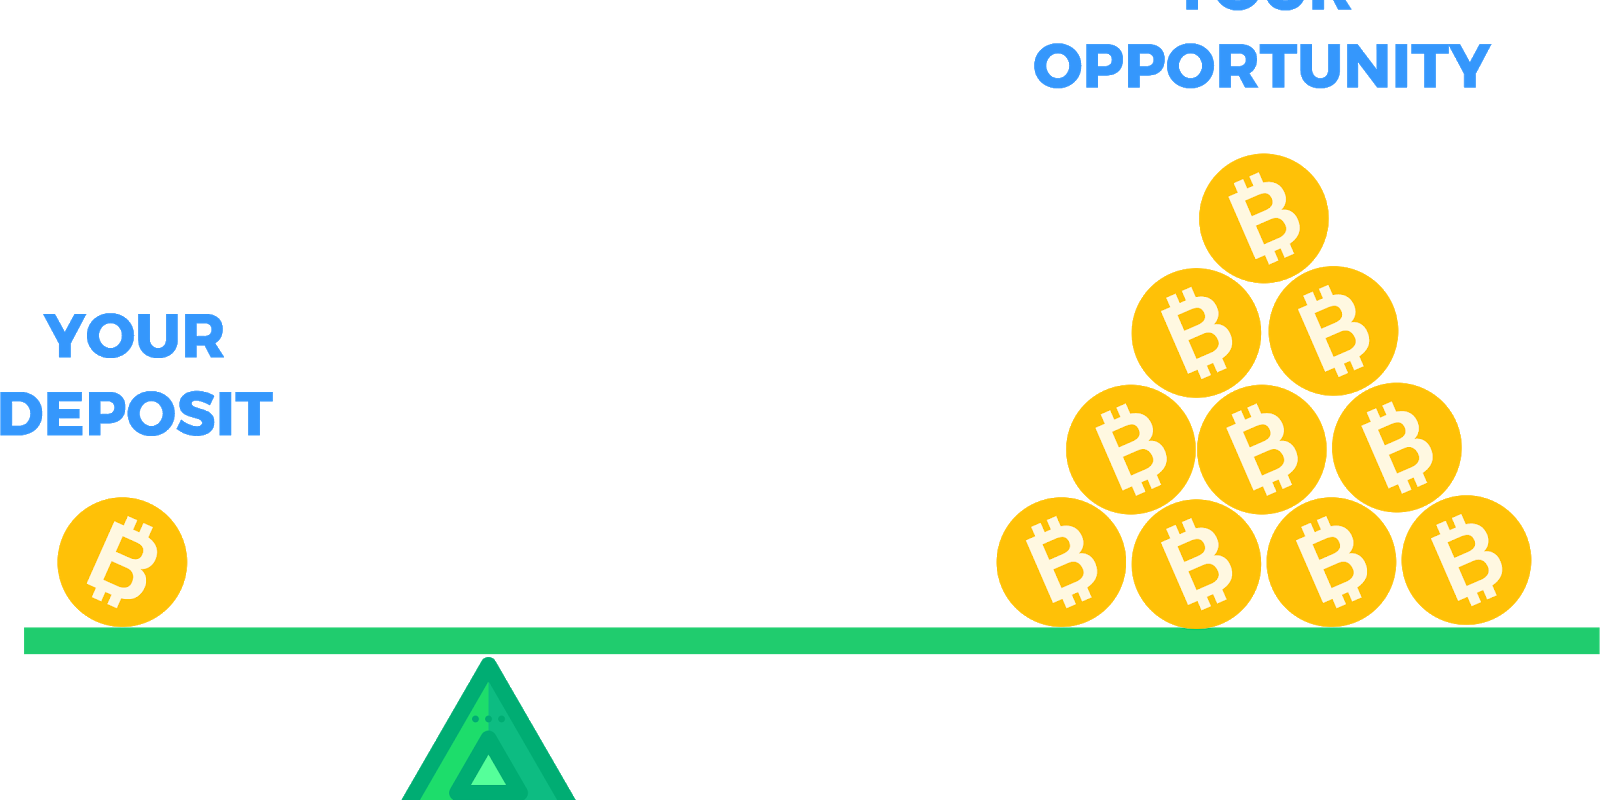 SIMPLE-GUIDE-Leverage-Trading-for-Huge-Potential-Profits-with-XRP-Bitcoin-Ethereum-1600x800